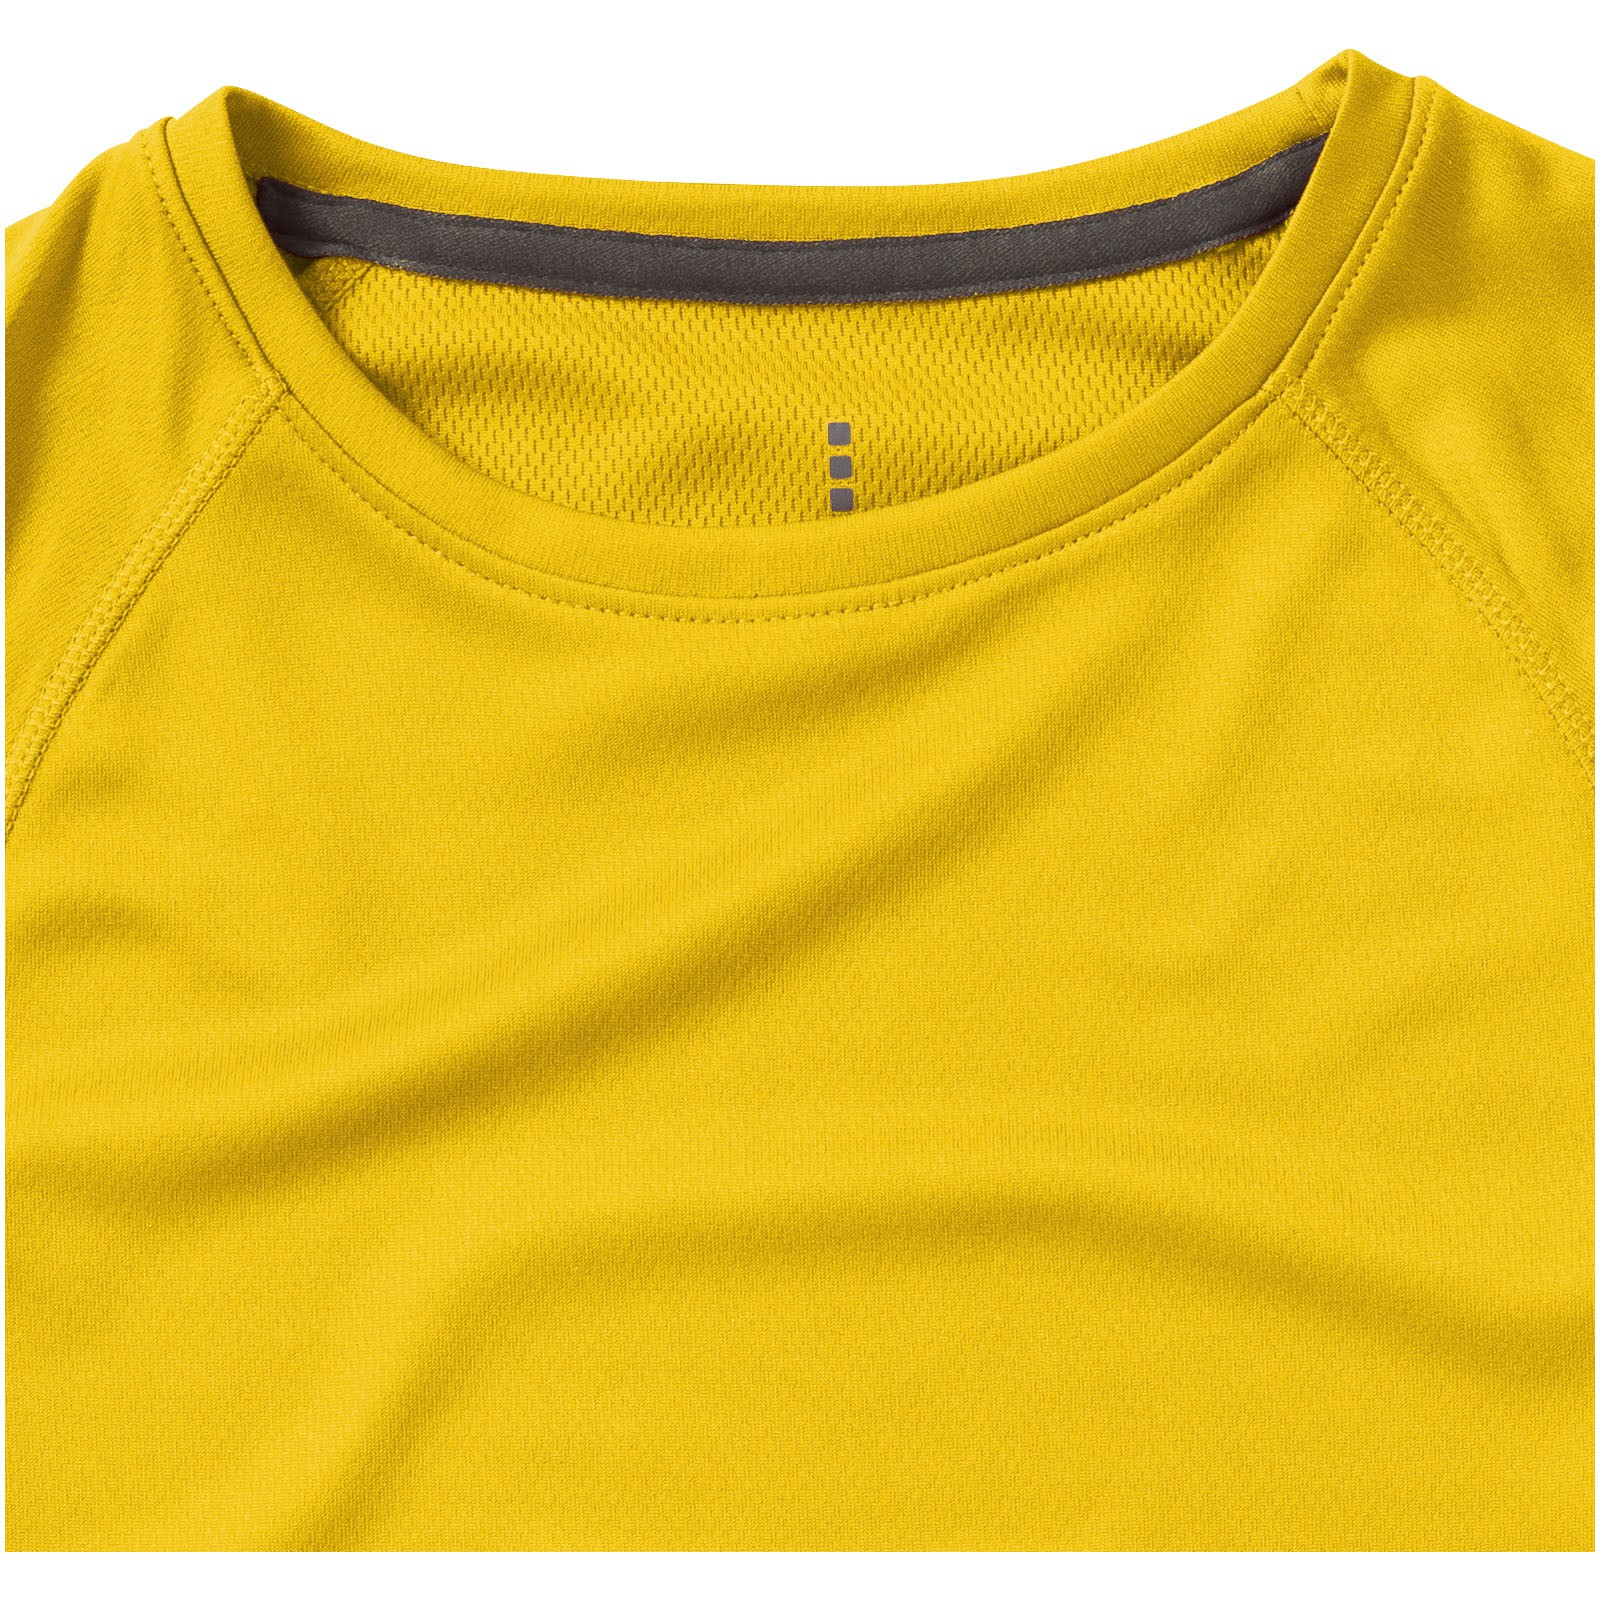 3d3ddac28d Niagara CF Lds Tee, Yellow, XL (T-shirt, mixed fiber, synthetic ...